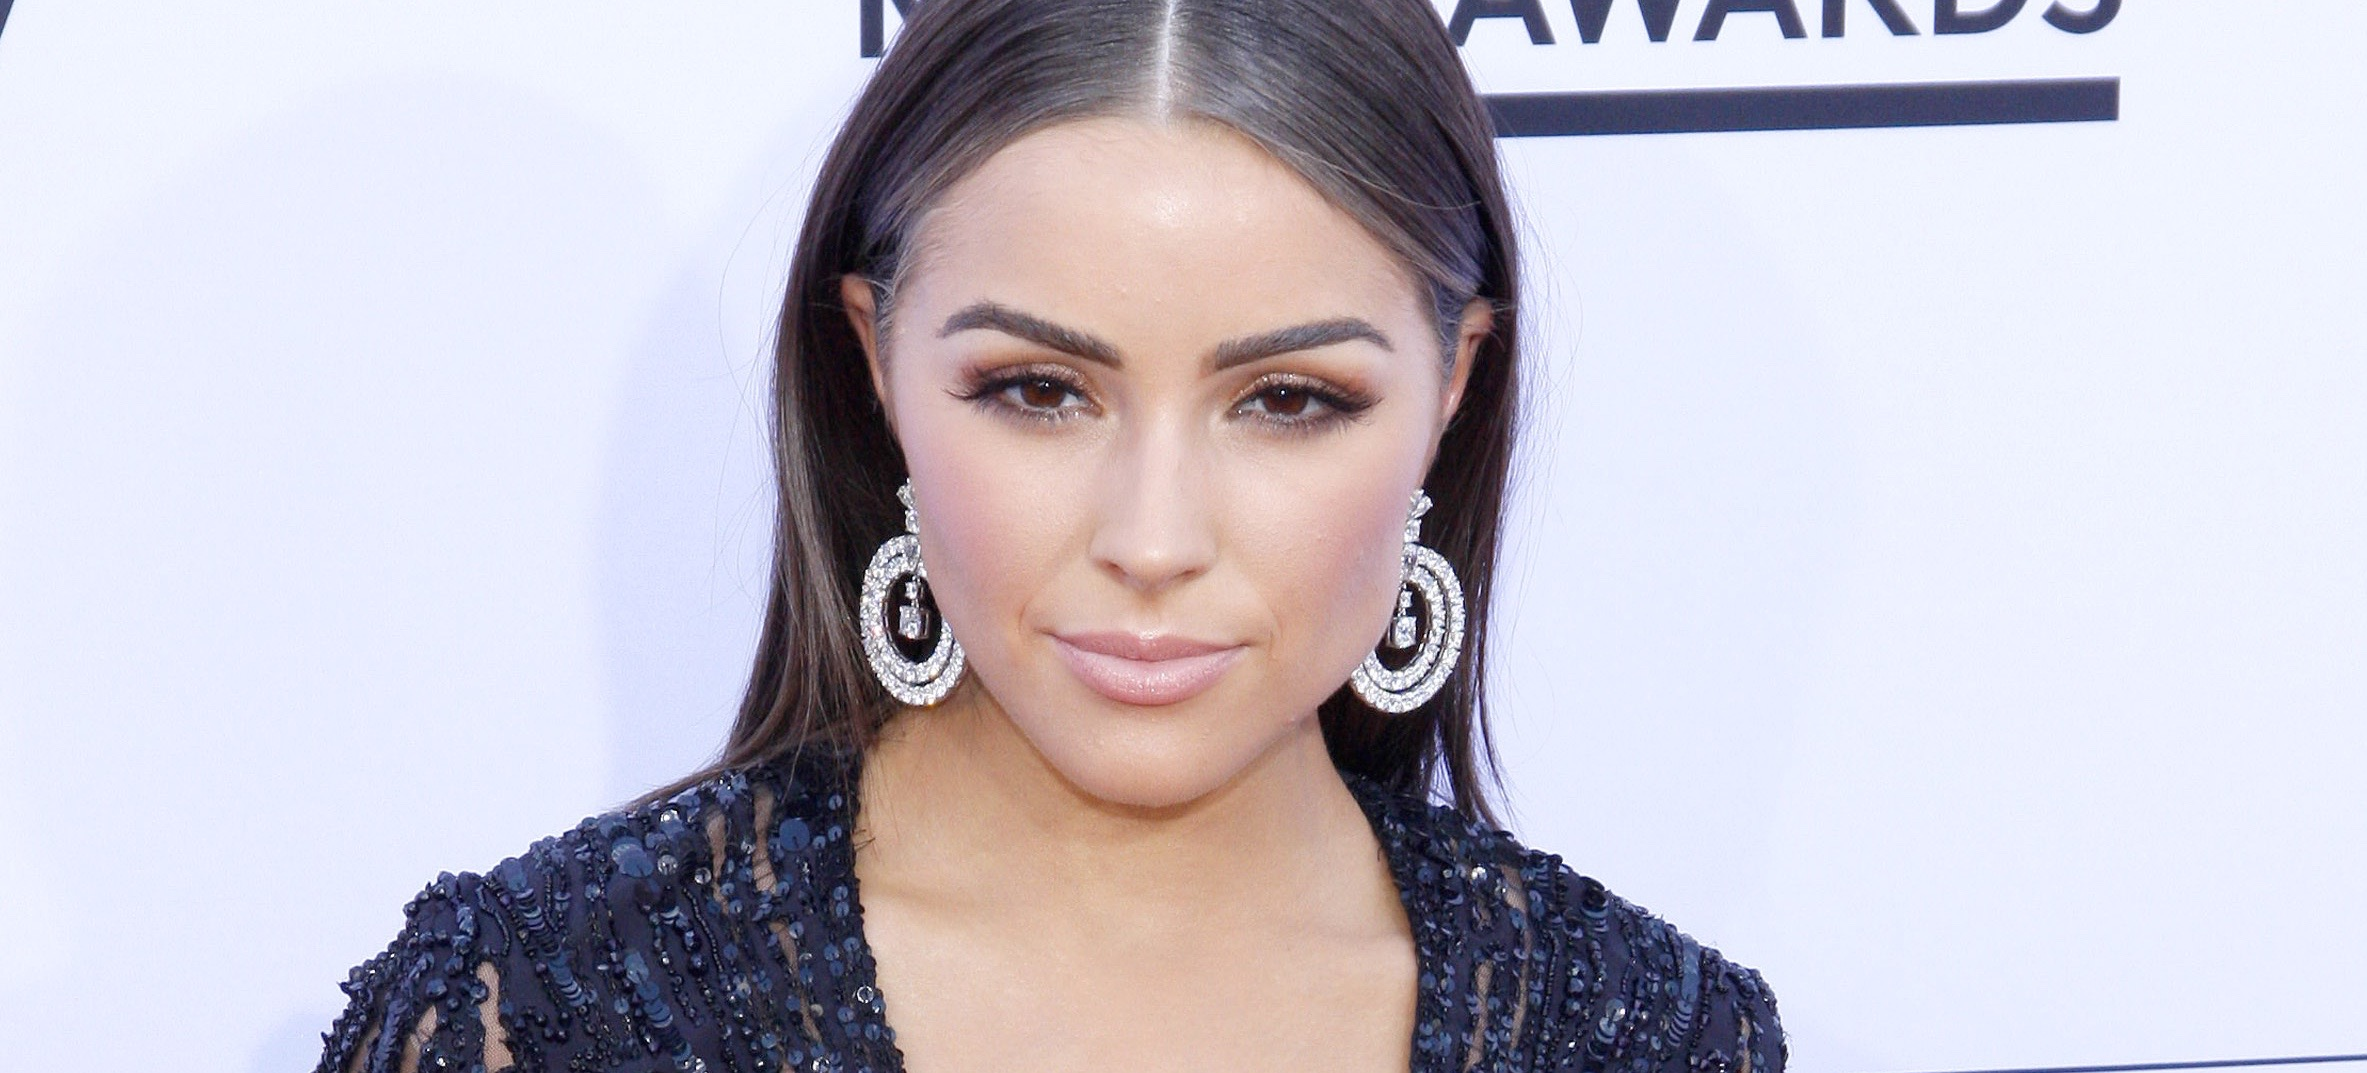 Olivia Culpo Shares Her 3 Favorite Go-To Makeup Looks